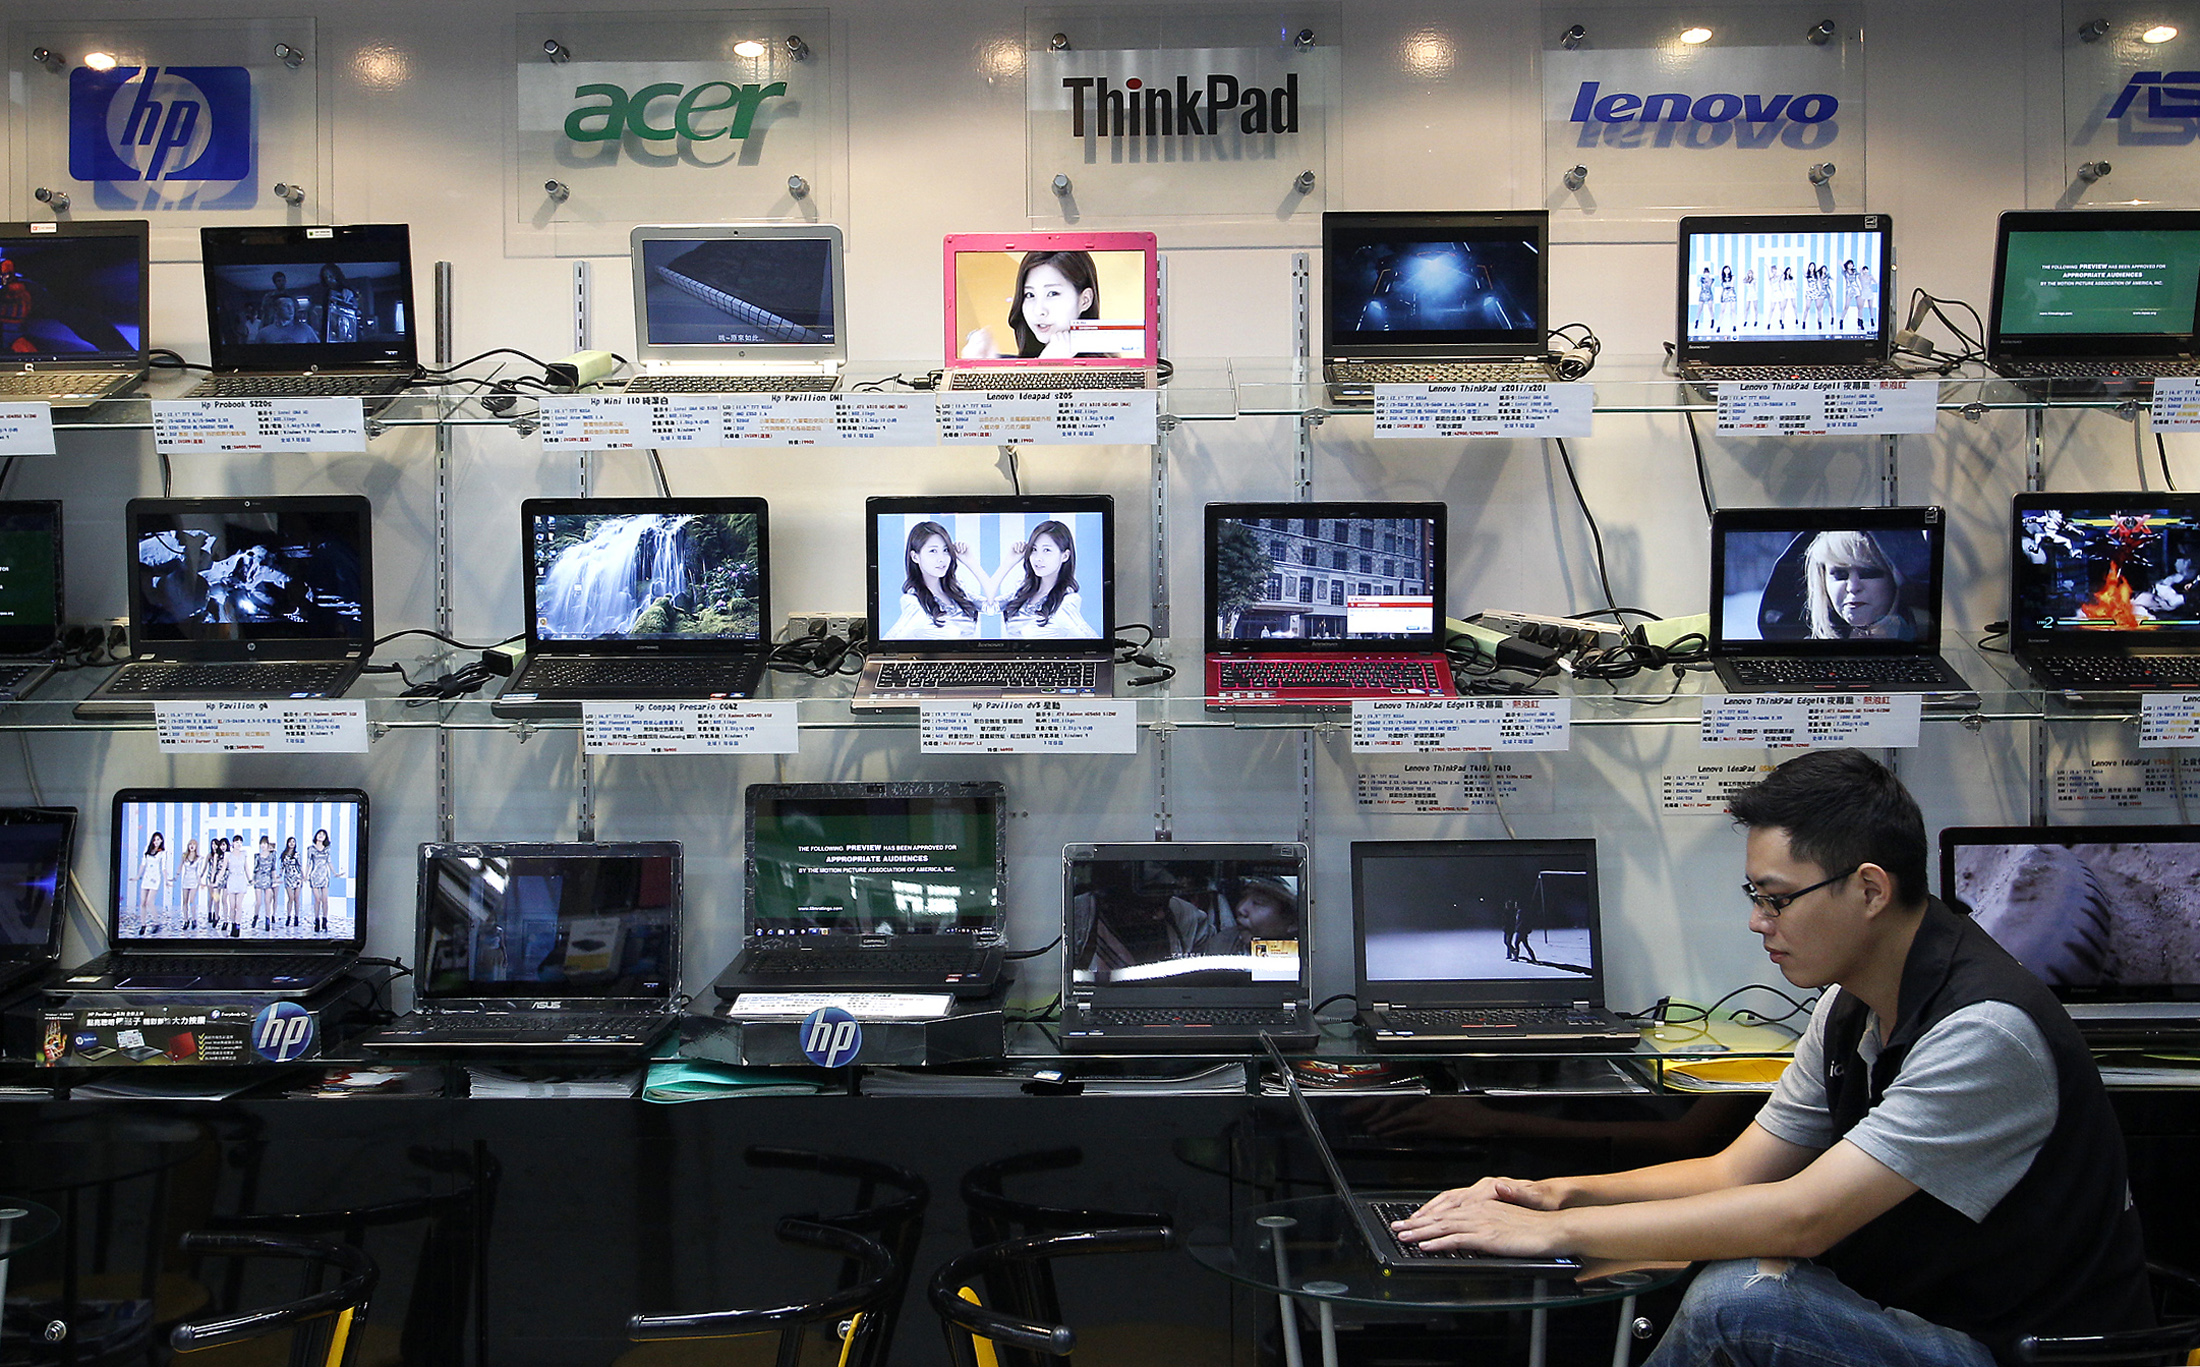 A shop attendant sits in front of a wall of laptops at a computer mall in Taipei August 31, 2011. The world's top two contract laptop makers gave subdued outlooks for this year in the face of stiff competition from tablet PCs and a deep malaise in major western economies that is sapping consumer buying power. REUTERS/Pichi Chuang (TAIWAN - Tags: BUSINESS SCIENCE TECHNOLOGY) - RTR2QKGR